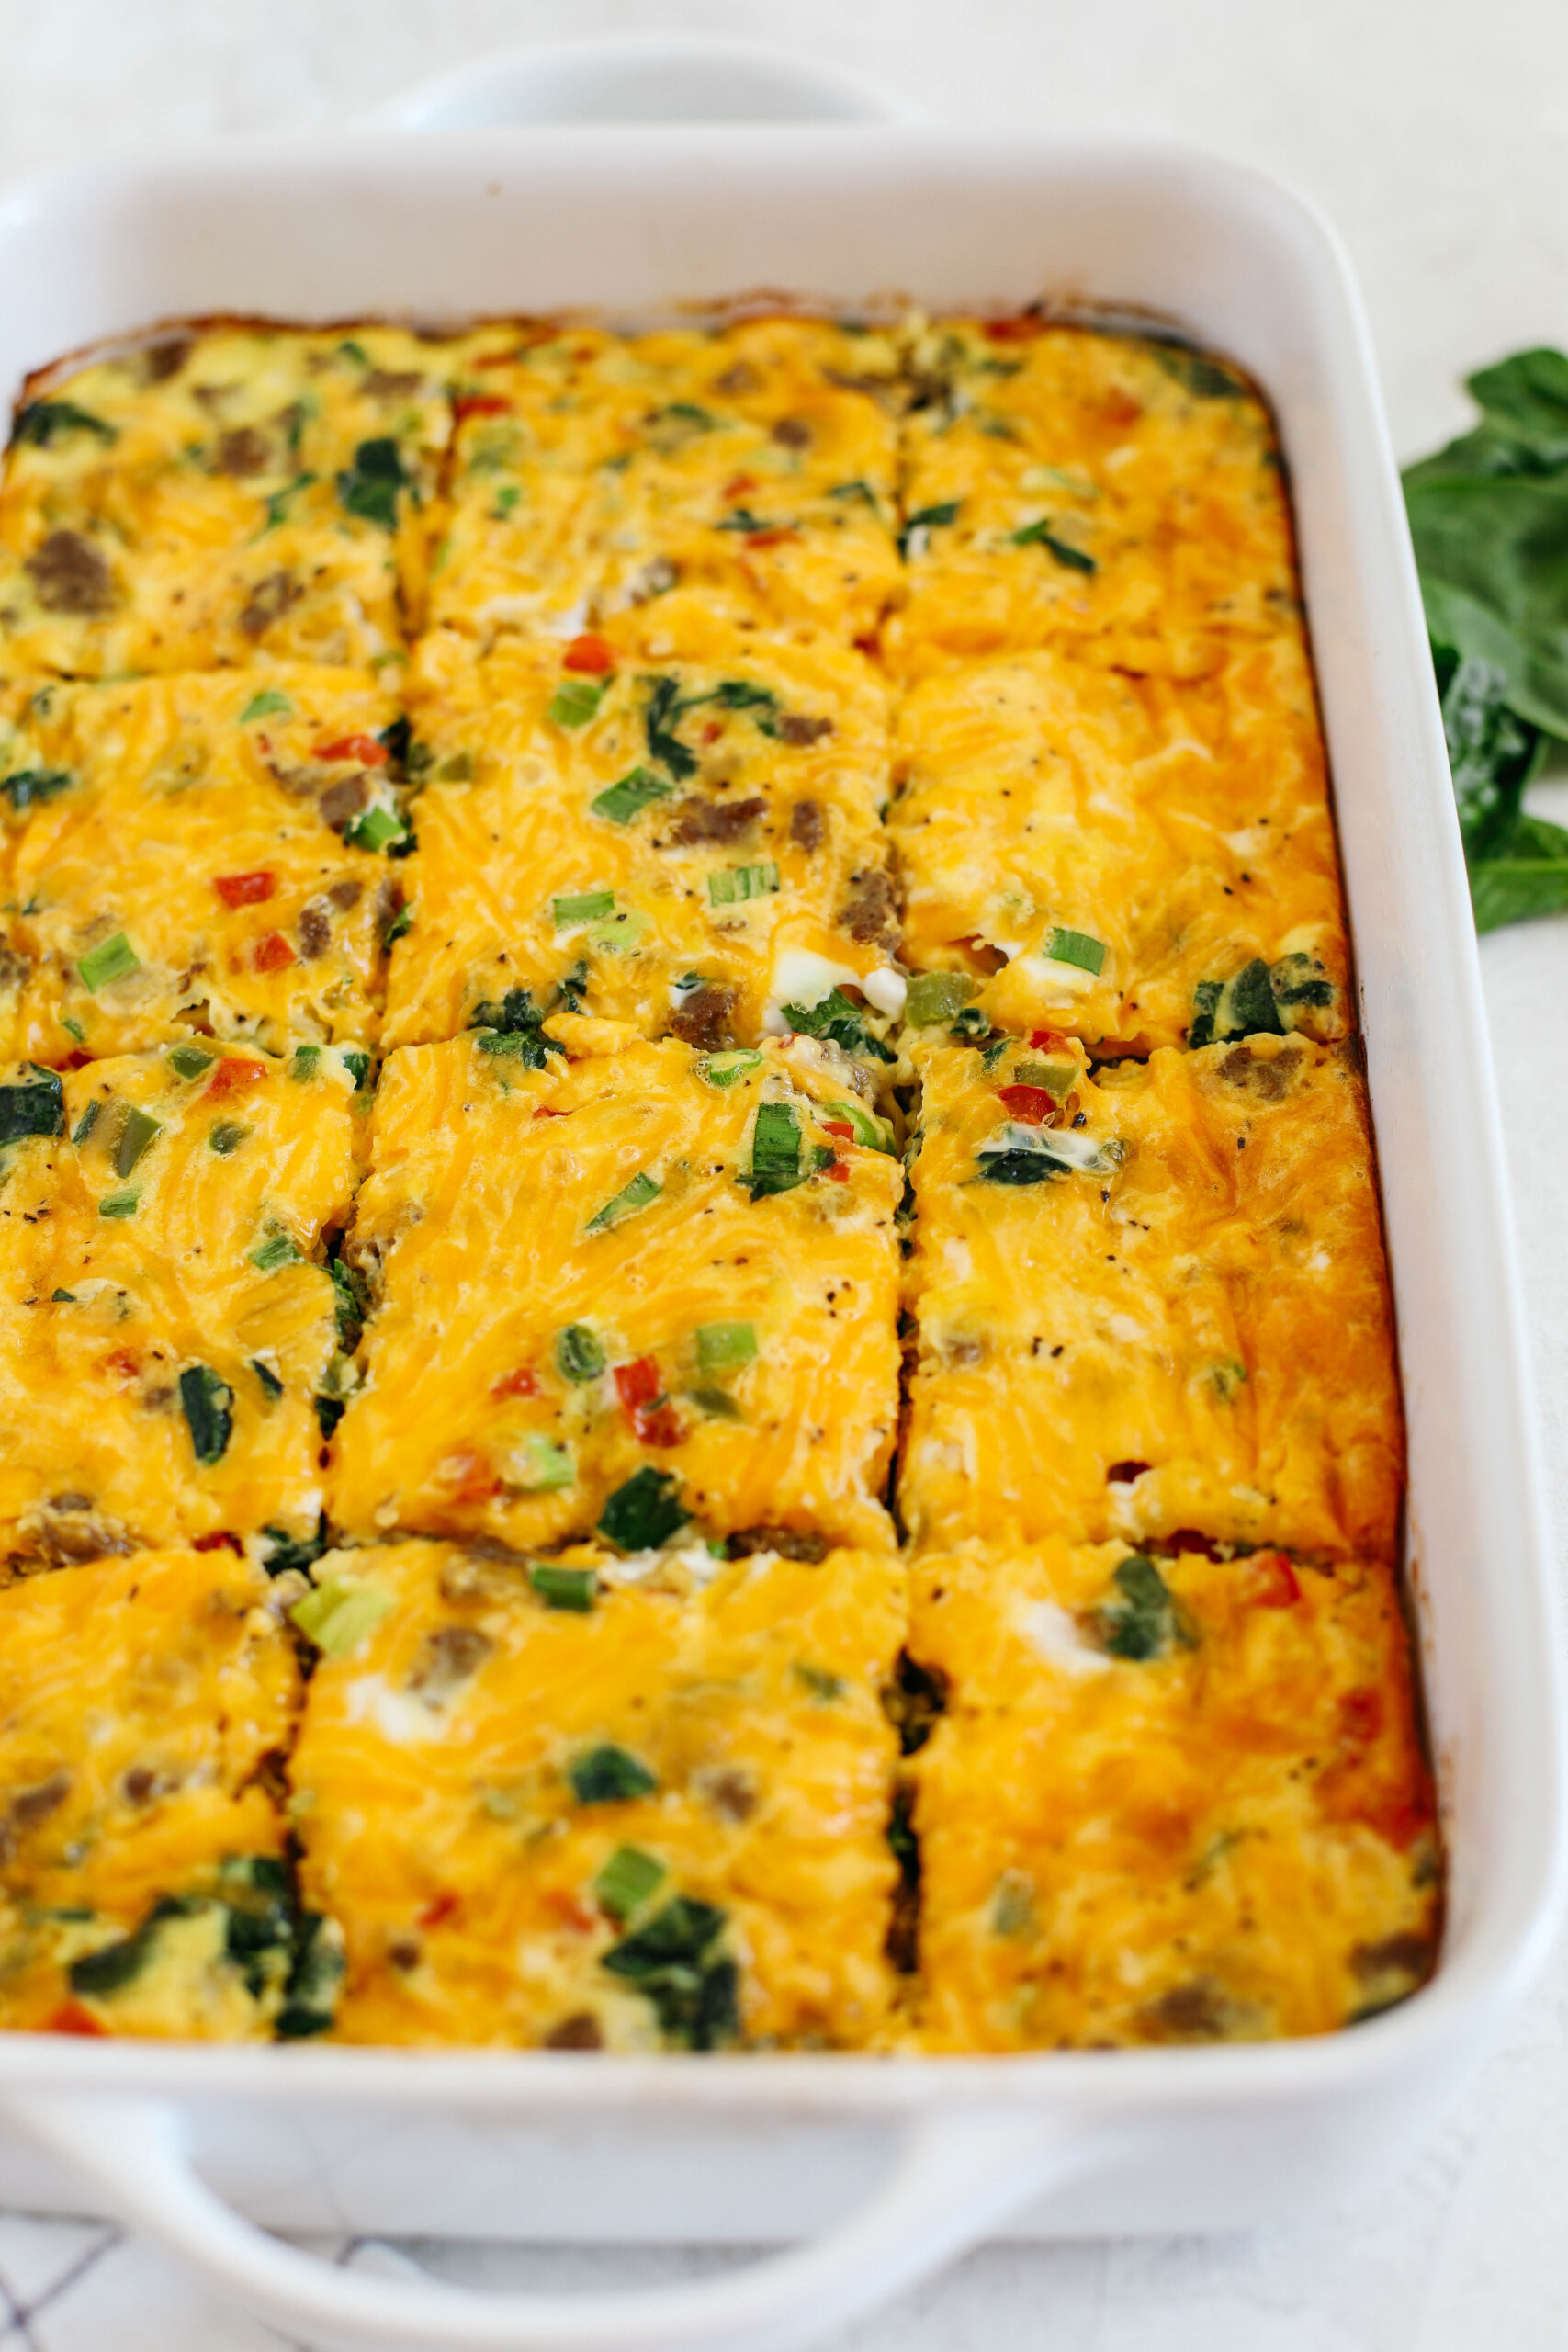 This Sausage and Veggie Egg Casserole makes the perfect low carb savory breakfast loaded with your favorite veggies, leafy greens, and delicious turkey sausage that is sure to be a crowdpleaser!